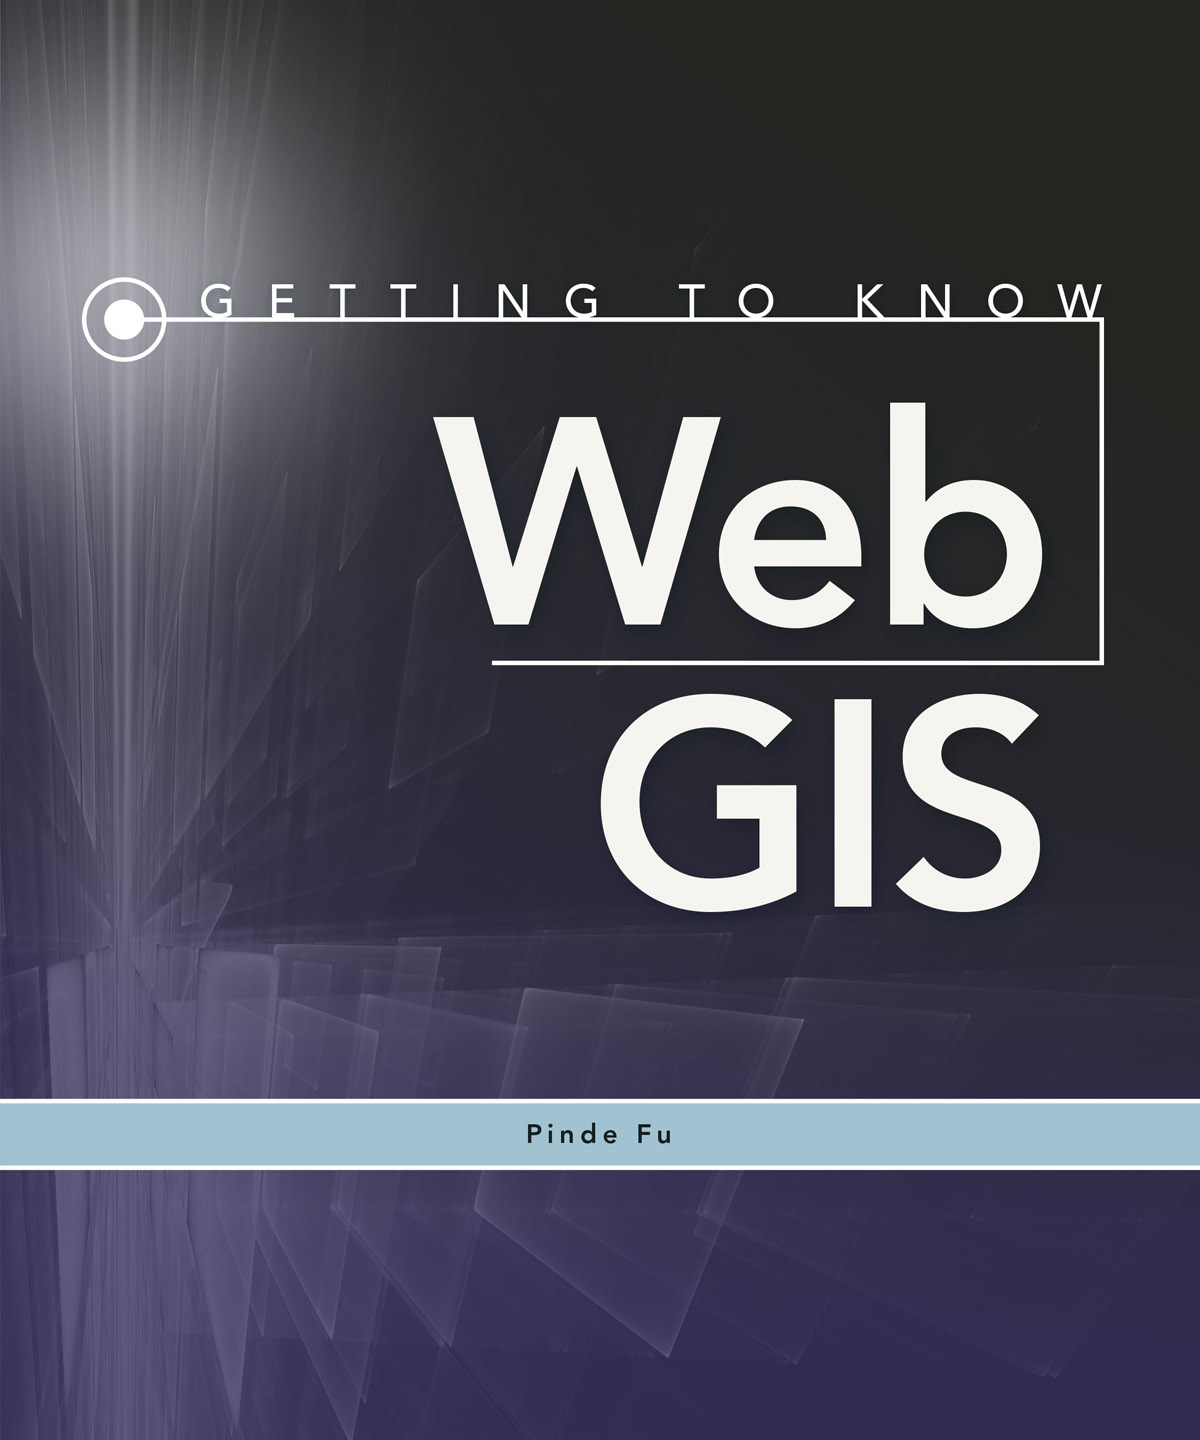 Getting to Know Web GIS provides easy-to-follow instructions on how to build web GIS applications using the ArcGIS platform.